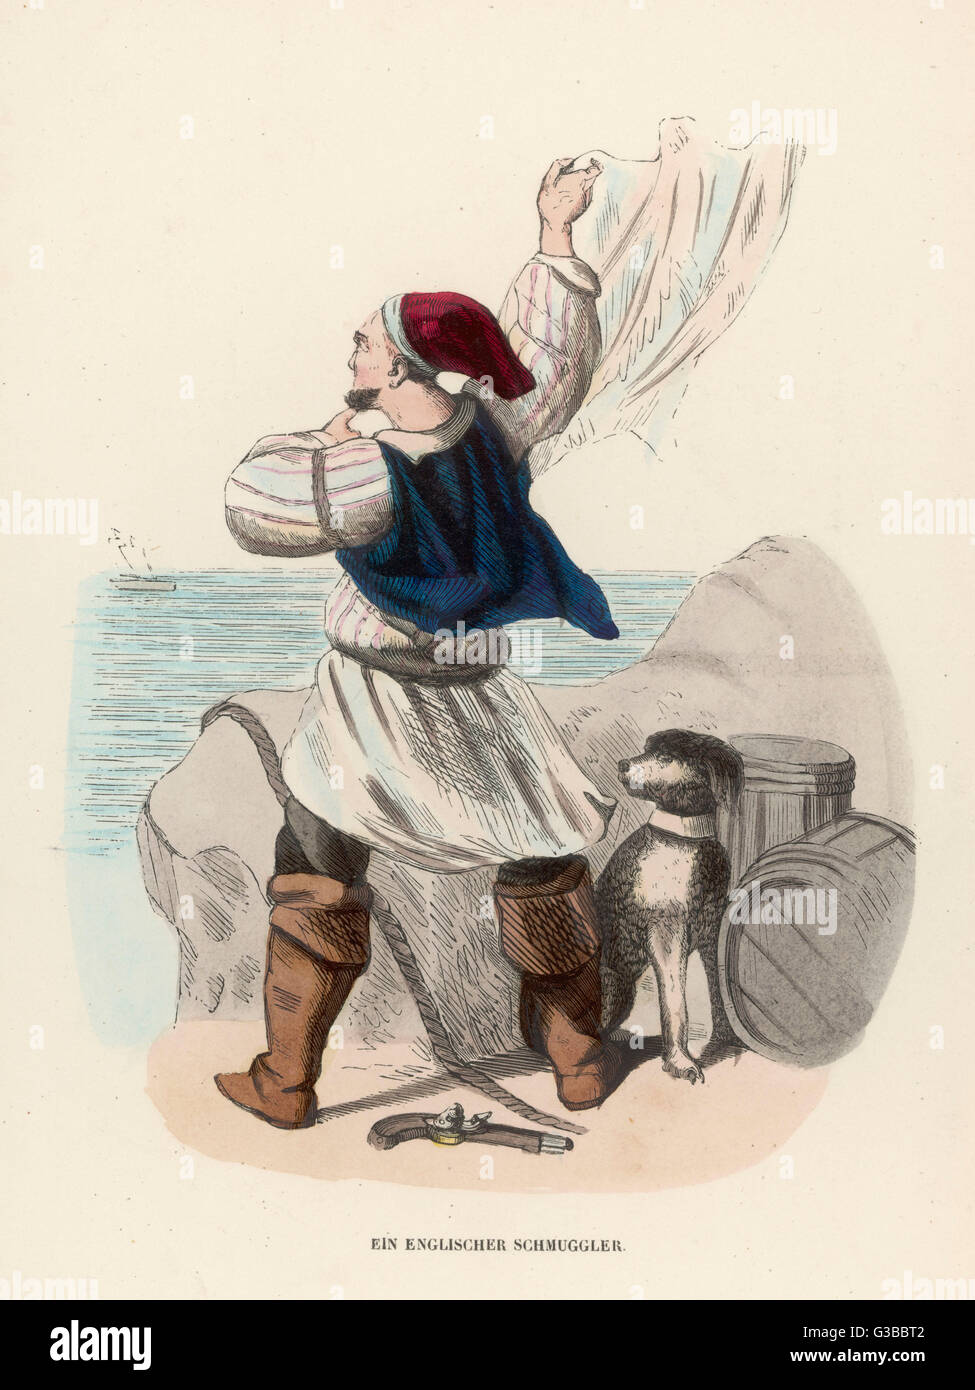 German portrayal of an English  smuggler         Date: Early 19th century - Stock Image